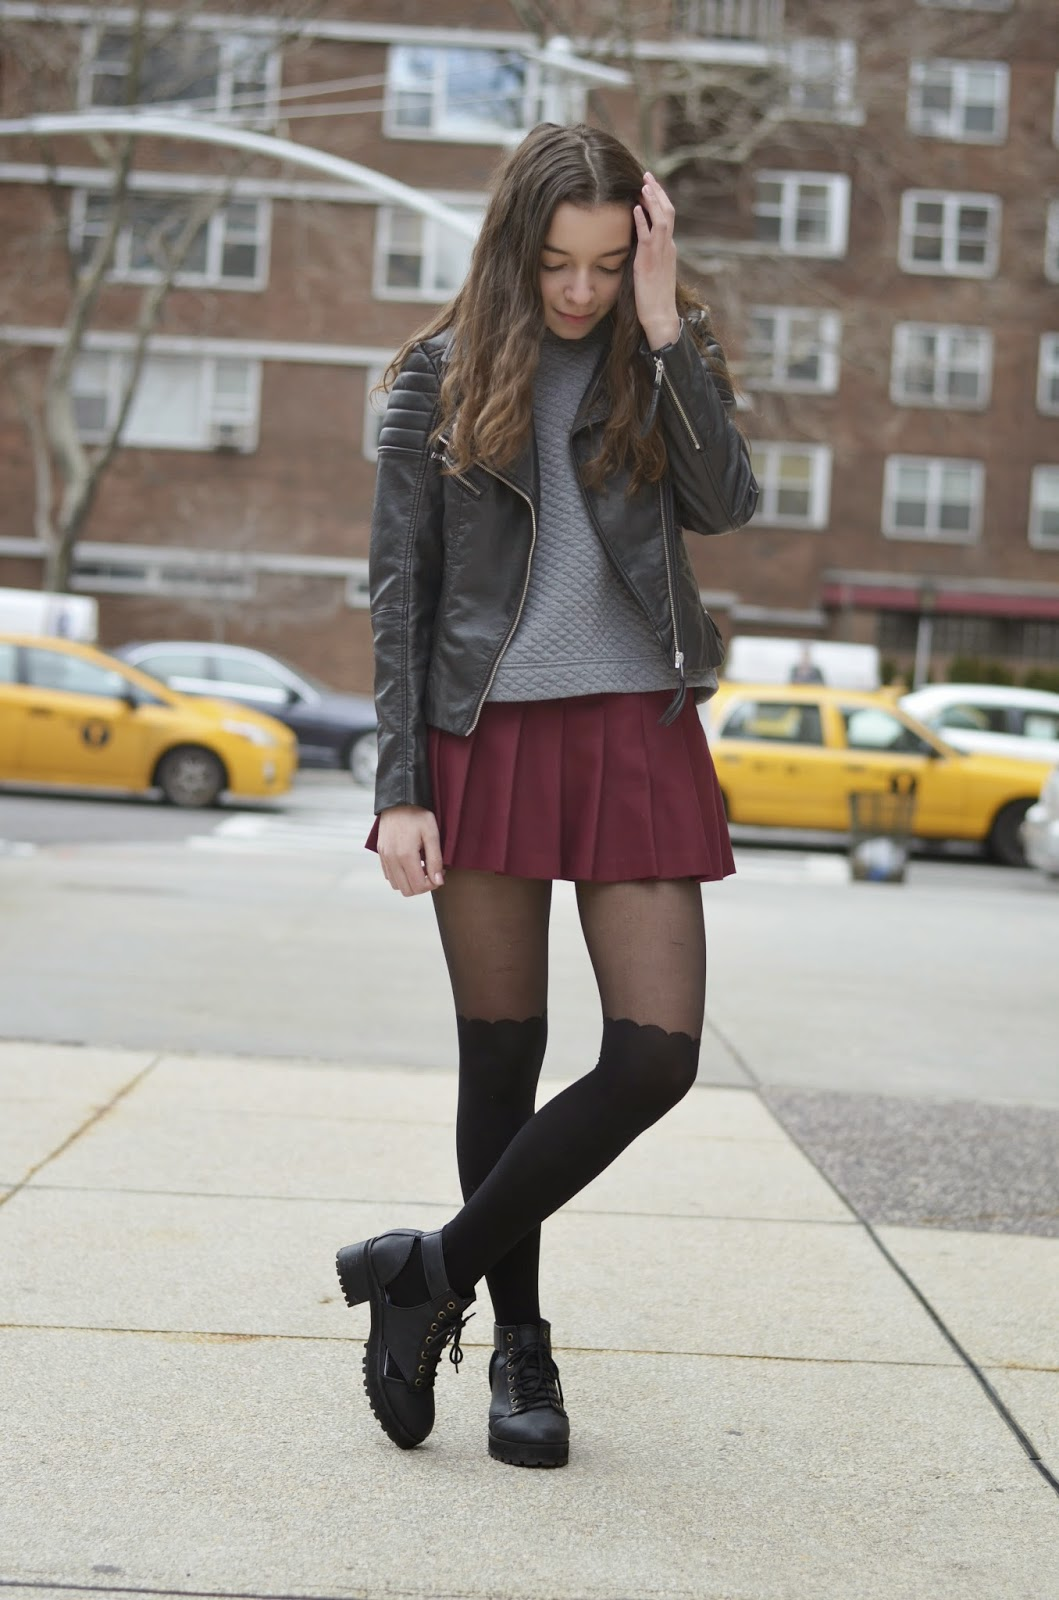 Tights With Navy Dress Tan Shoes